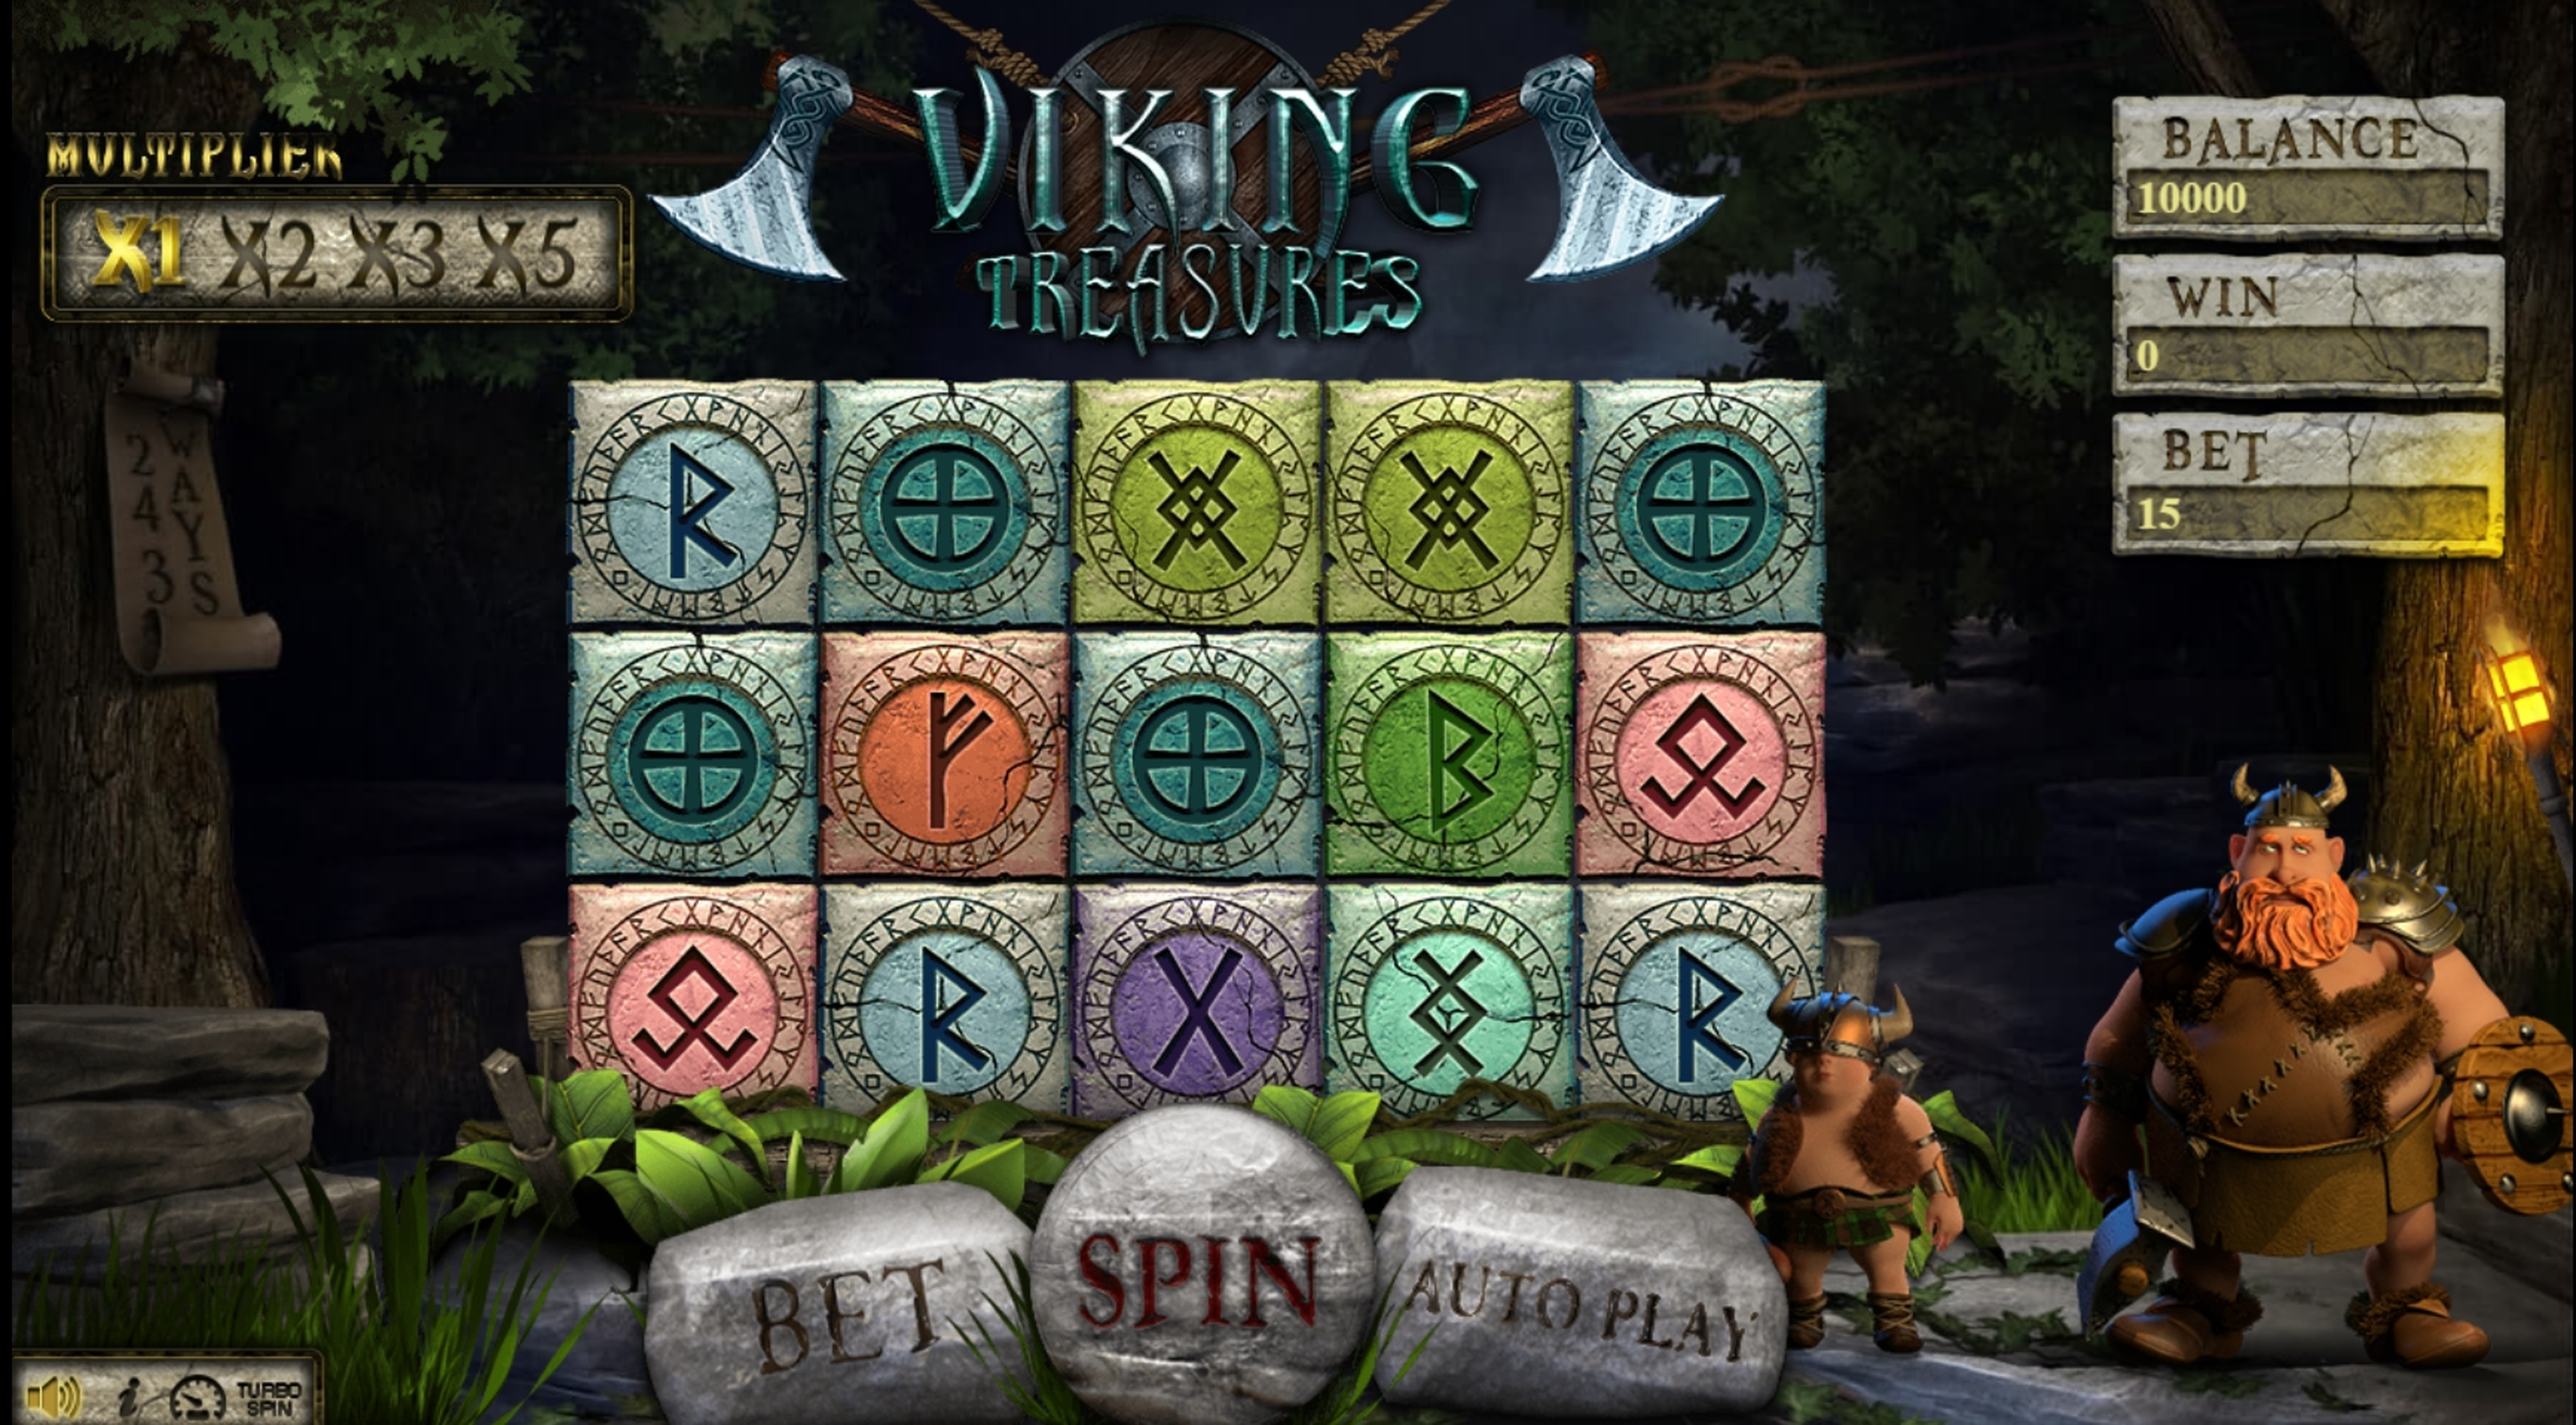 Reels in Viking Treasures (BetConstruct) Slot Game by Betconstruct